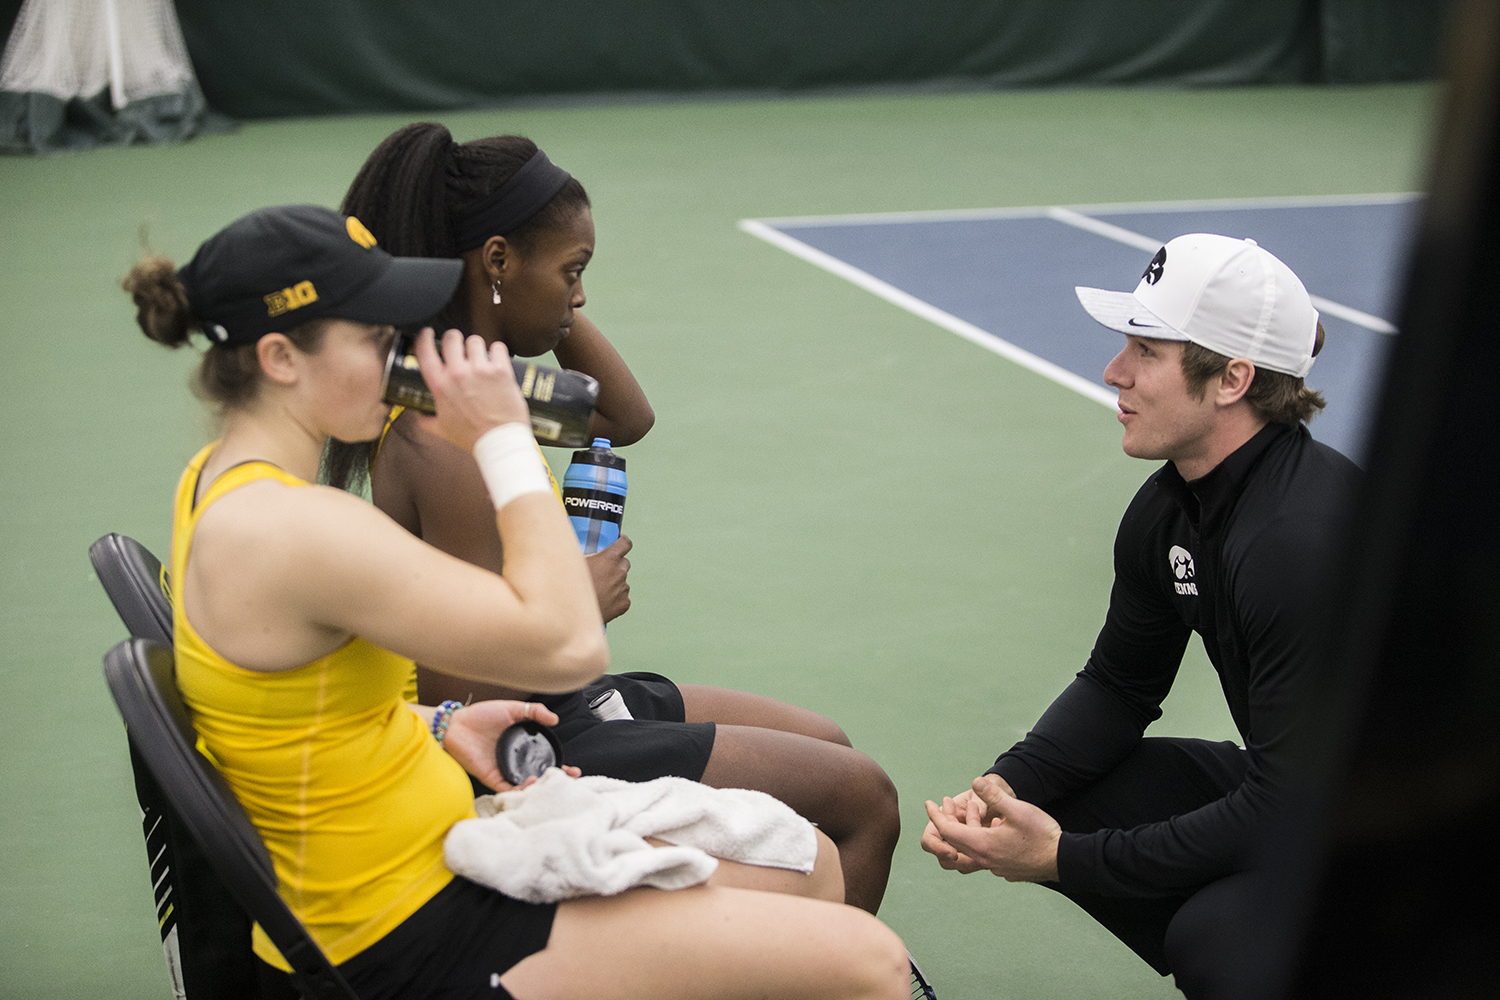 Iowa%27s+coach+Daniel+Leitner+coaches+doubles+team+Adorable+Huckleby+and+Elise+Van+Huevelen+during+a+tennis+match+between+Iowa+and+Xavier+at+the+Hawkeye+Tennis+and+Recreation+Complex+on+Friday%2C+January+18%2C+2019.+The+Hawkeyes+swept+the+match+against+the+Musketeers%2C+7-0.